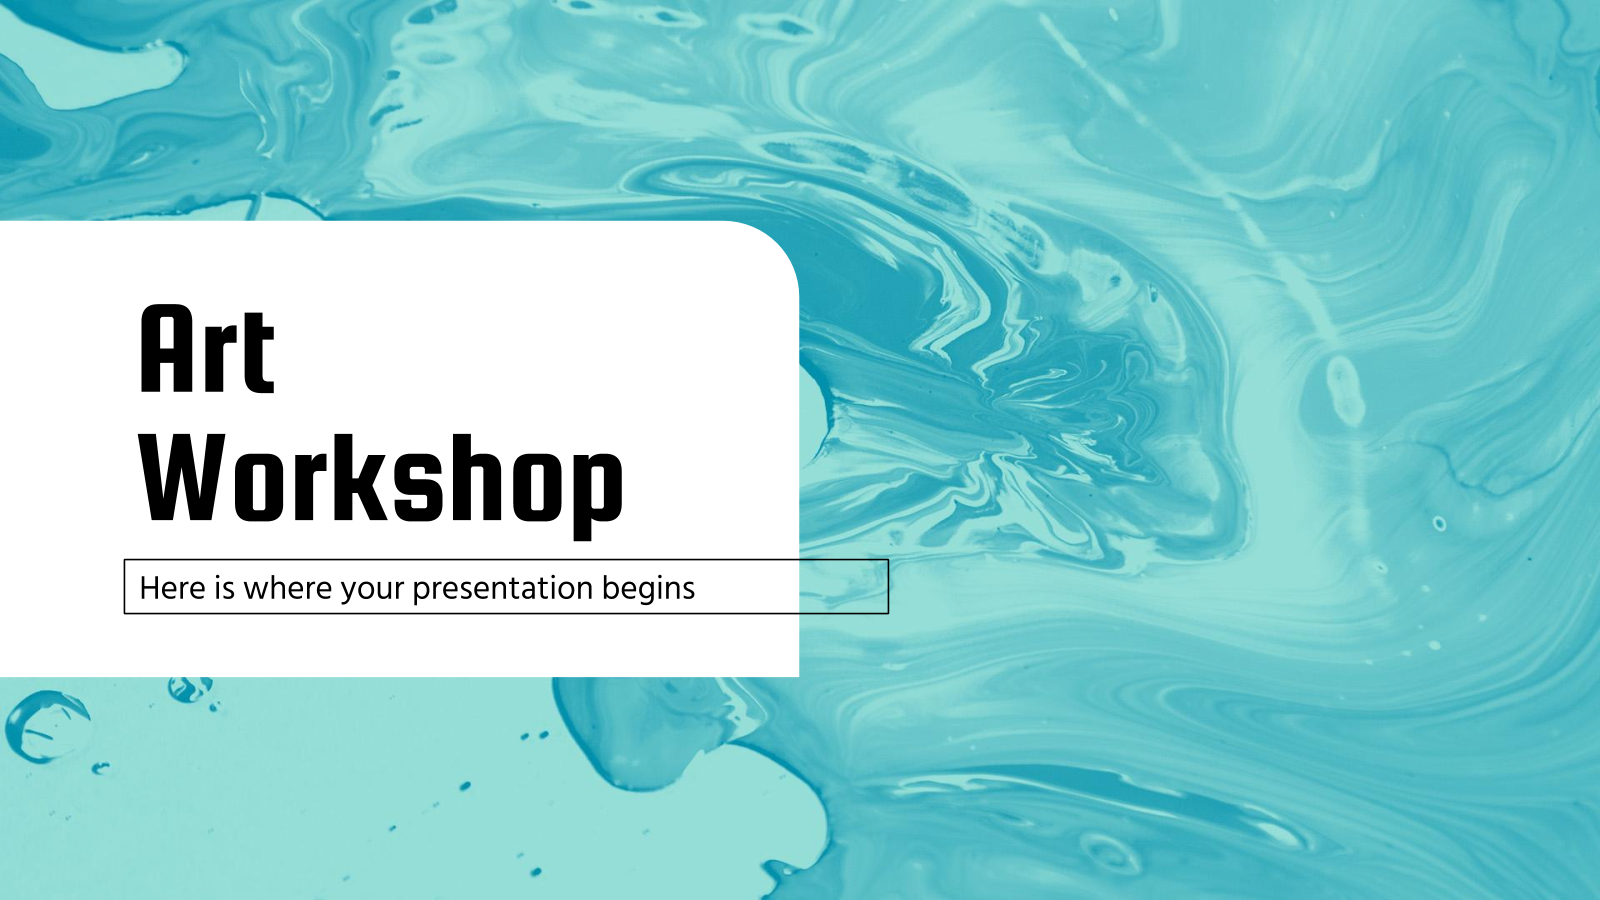 Art Workshop presentation template